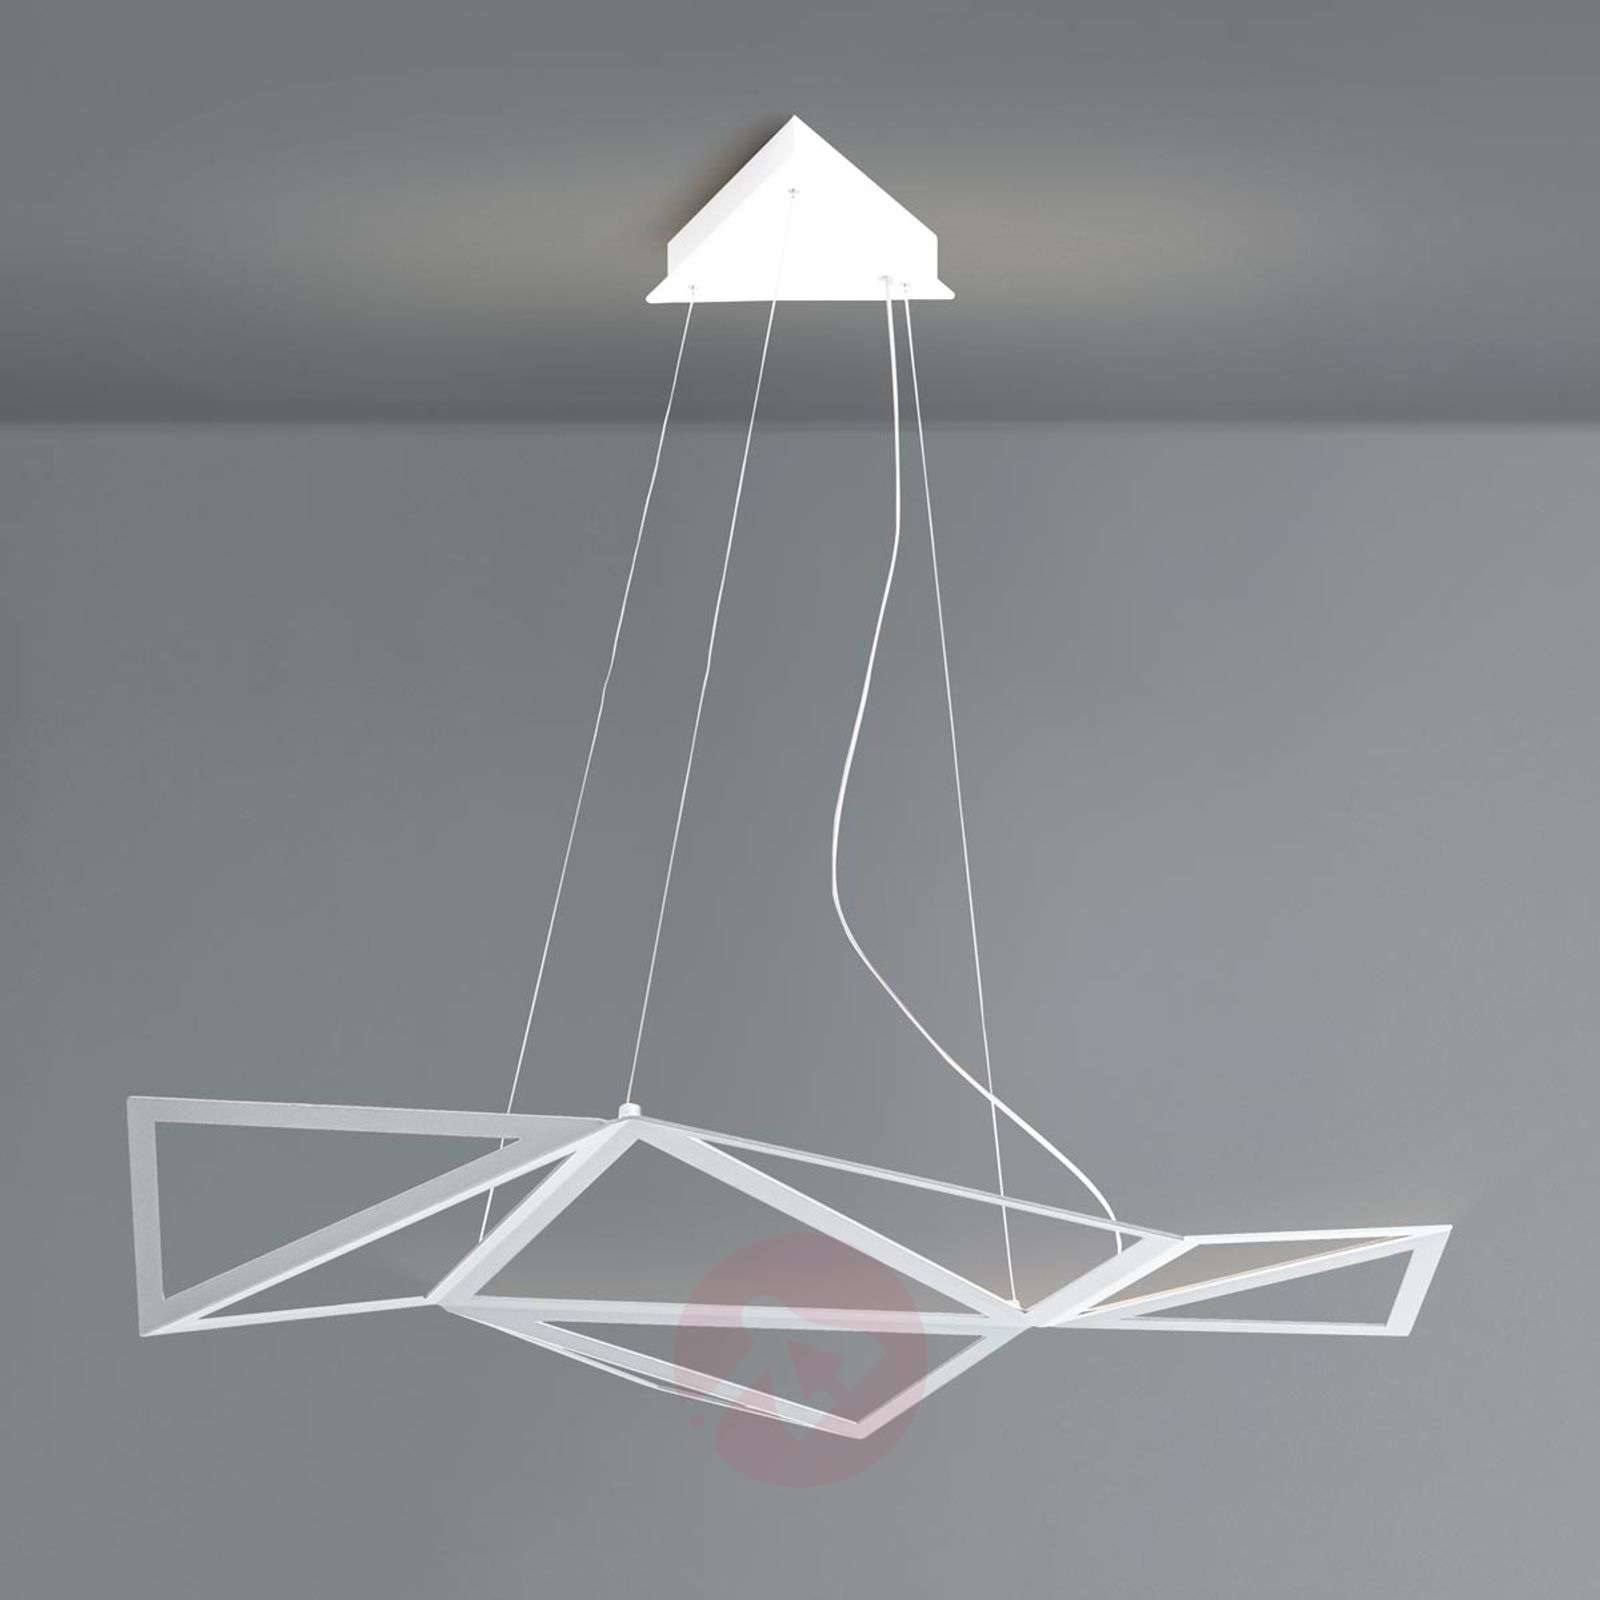 Exquisite LED pendant light Starlight in white-5501122-01